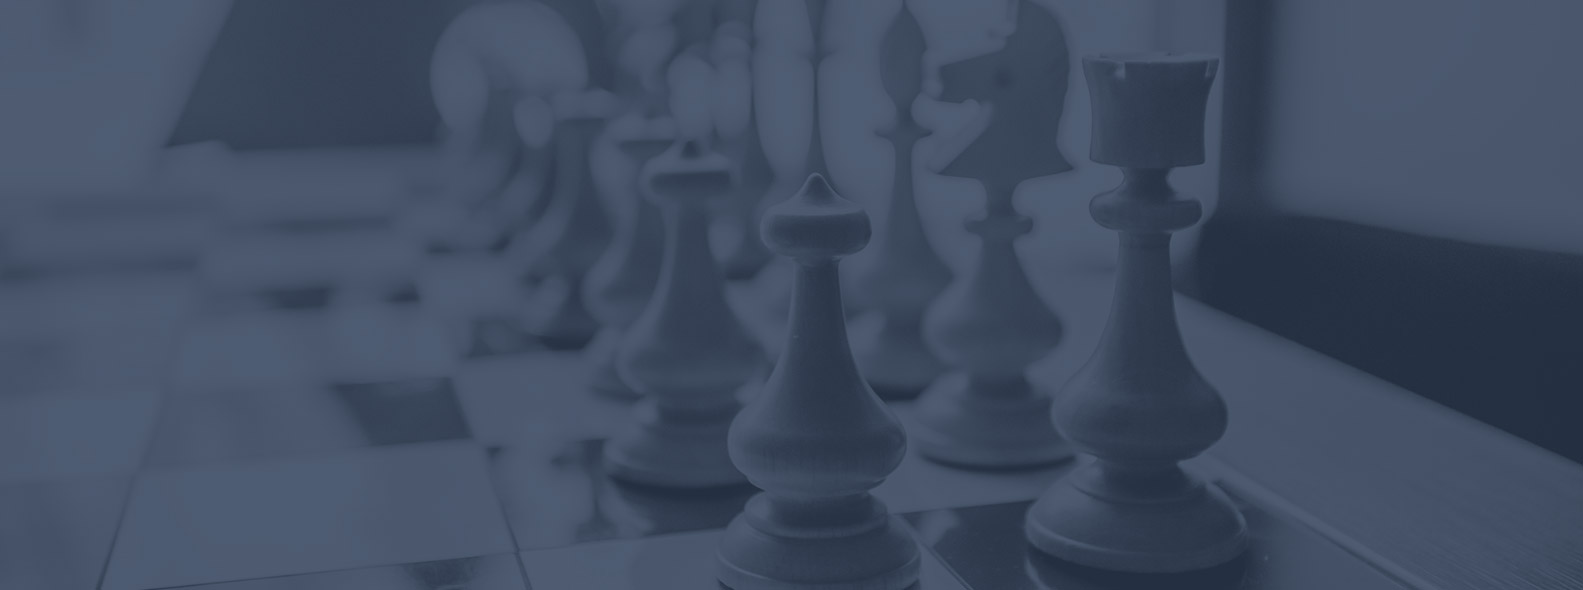 Chess pieces representing Making your strategic move in managing changing tax law with Diligentiam